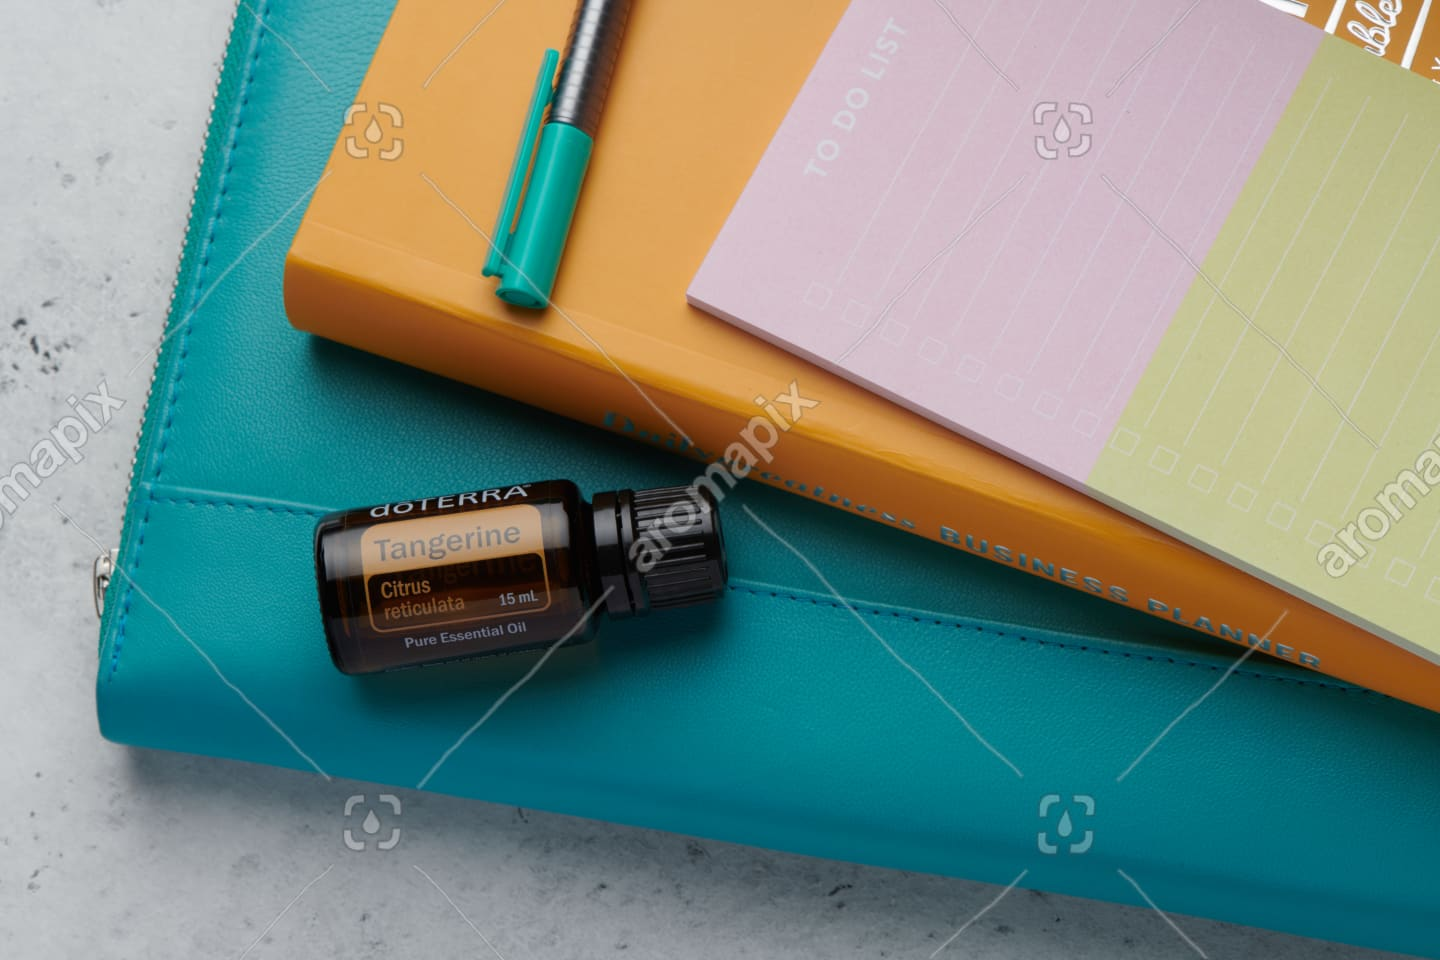 doTERRA Tangerine product with business tools